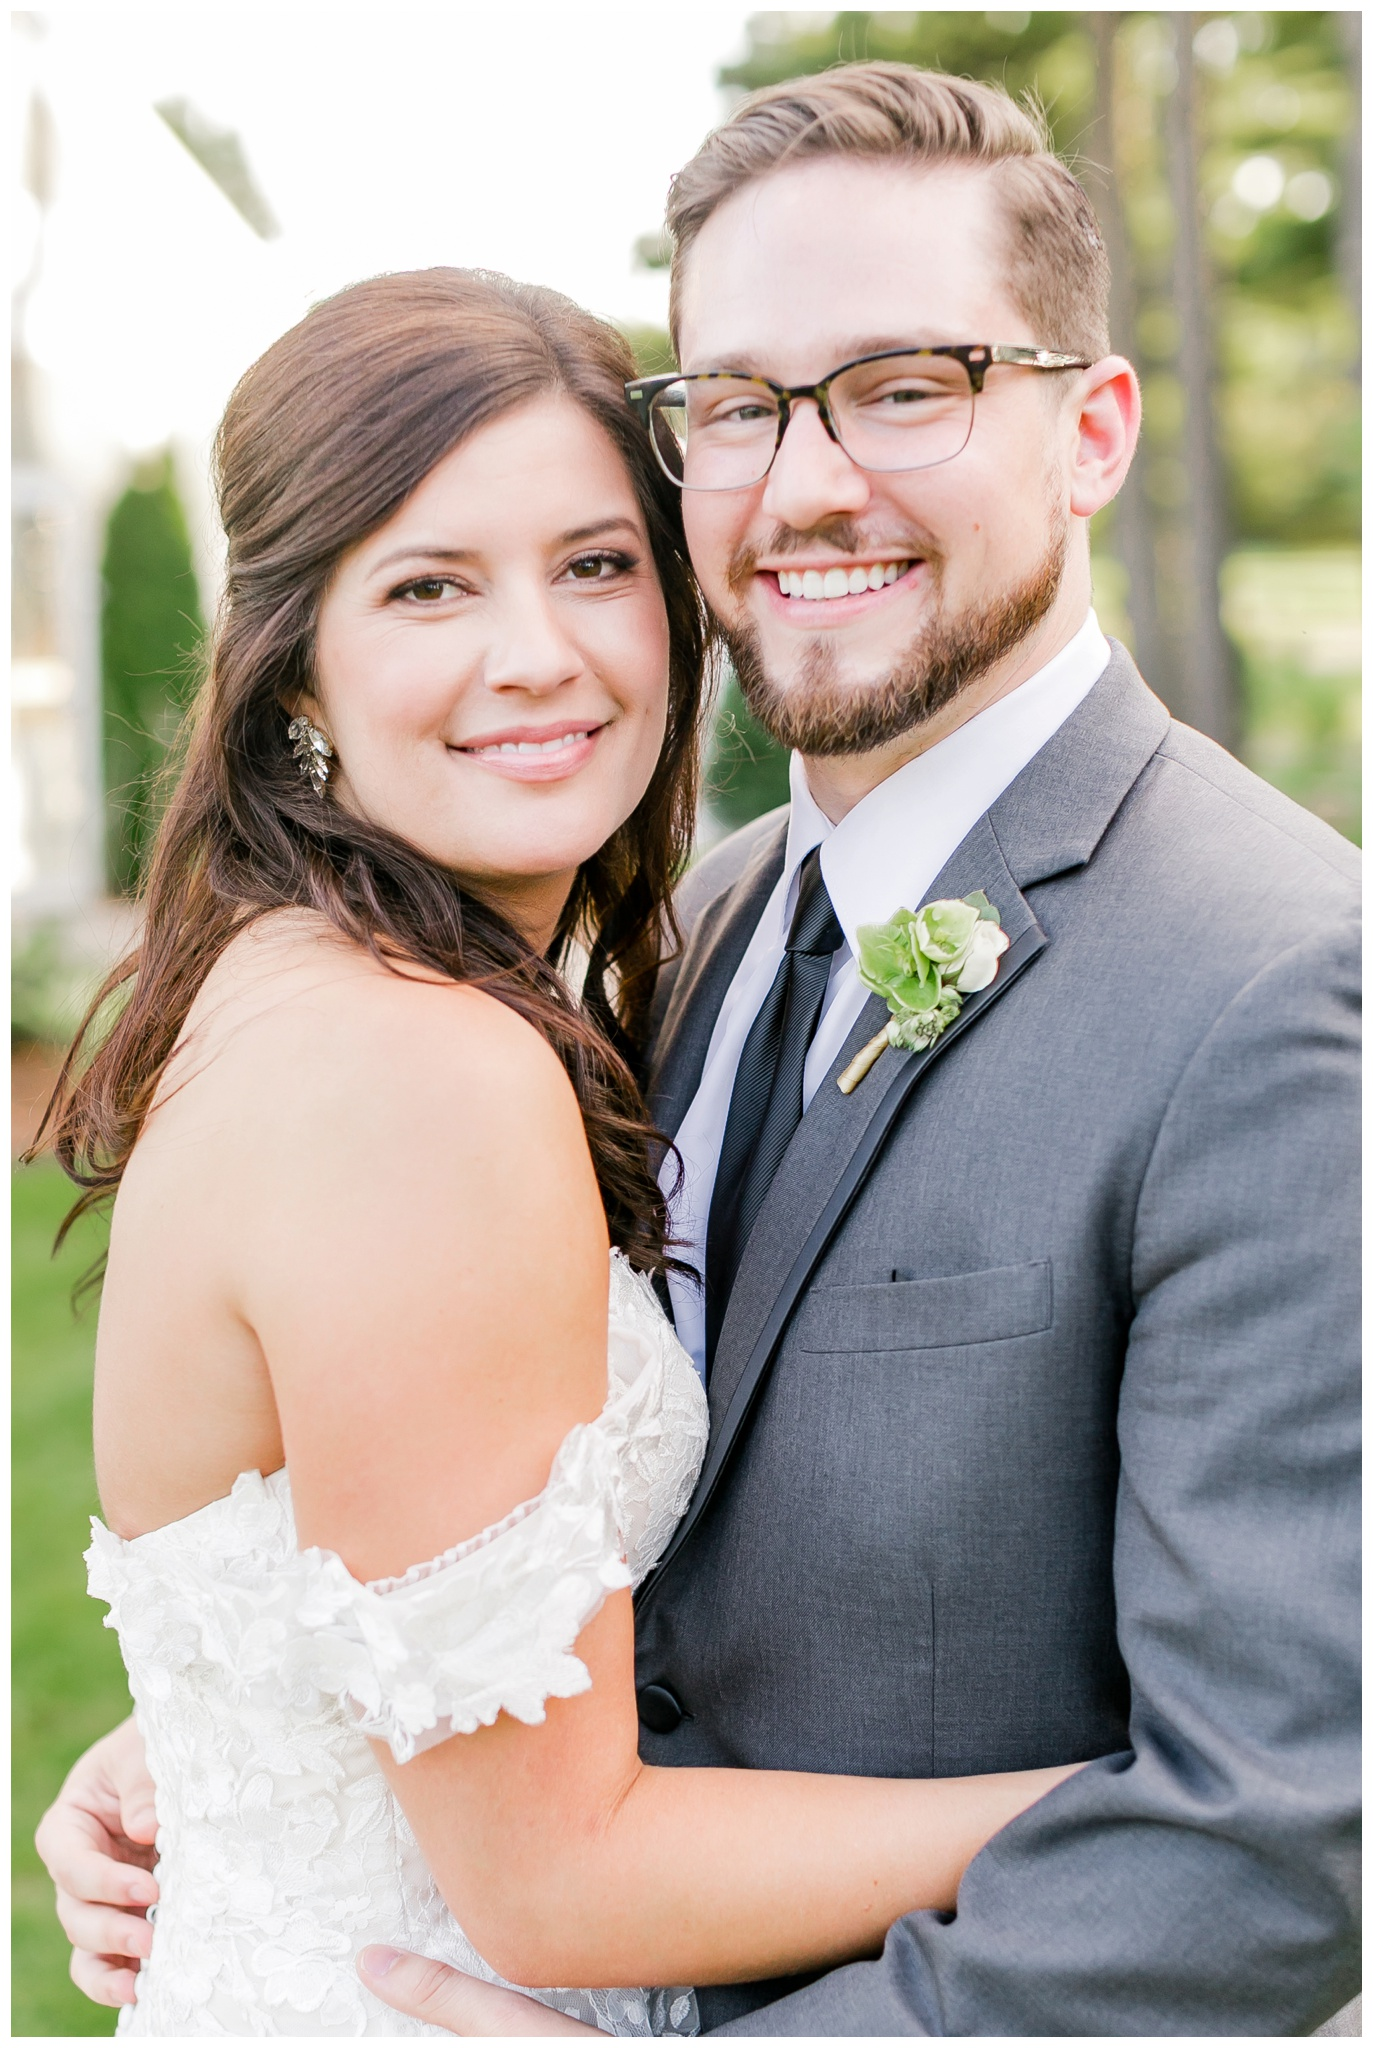 bishops_bay_country_club_wedding_middleton_wisconsin_caynay_photo_4731.jpg